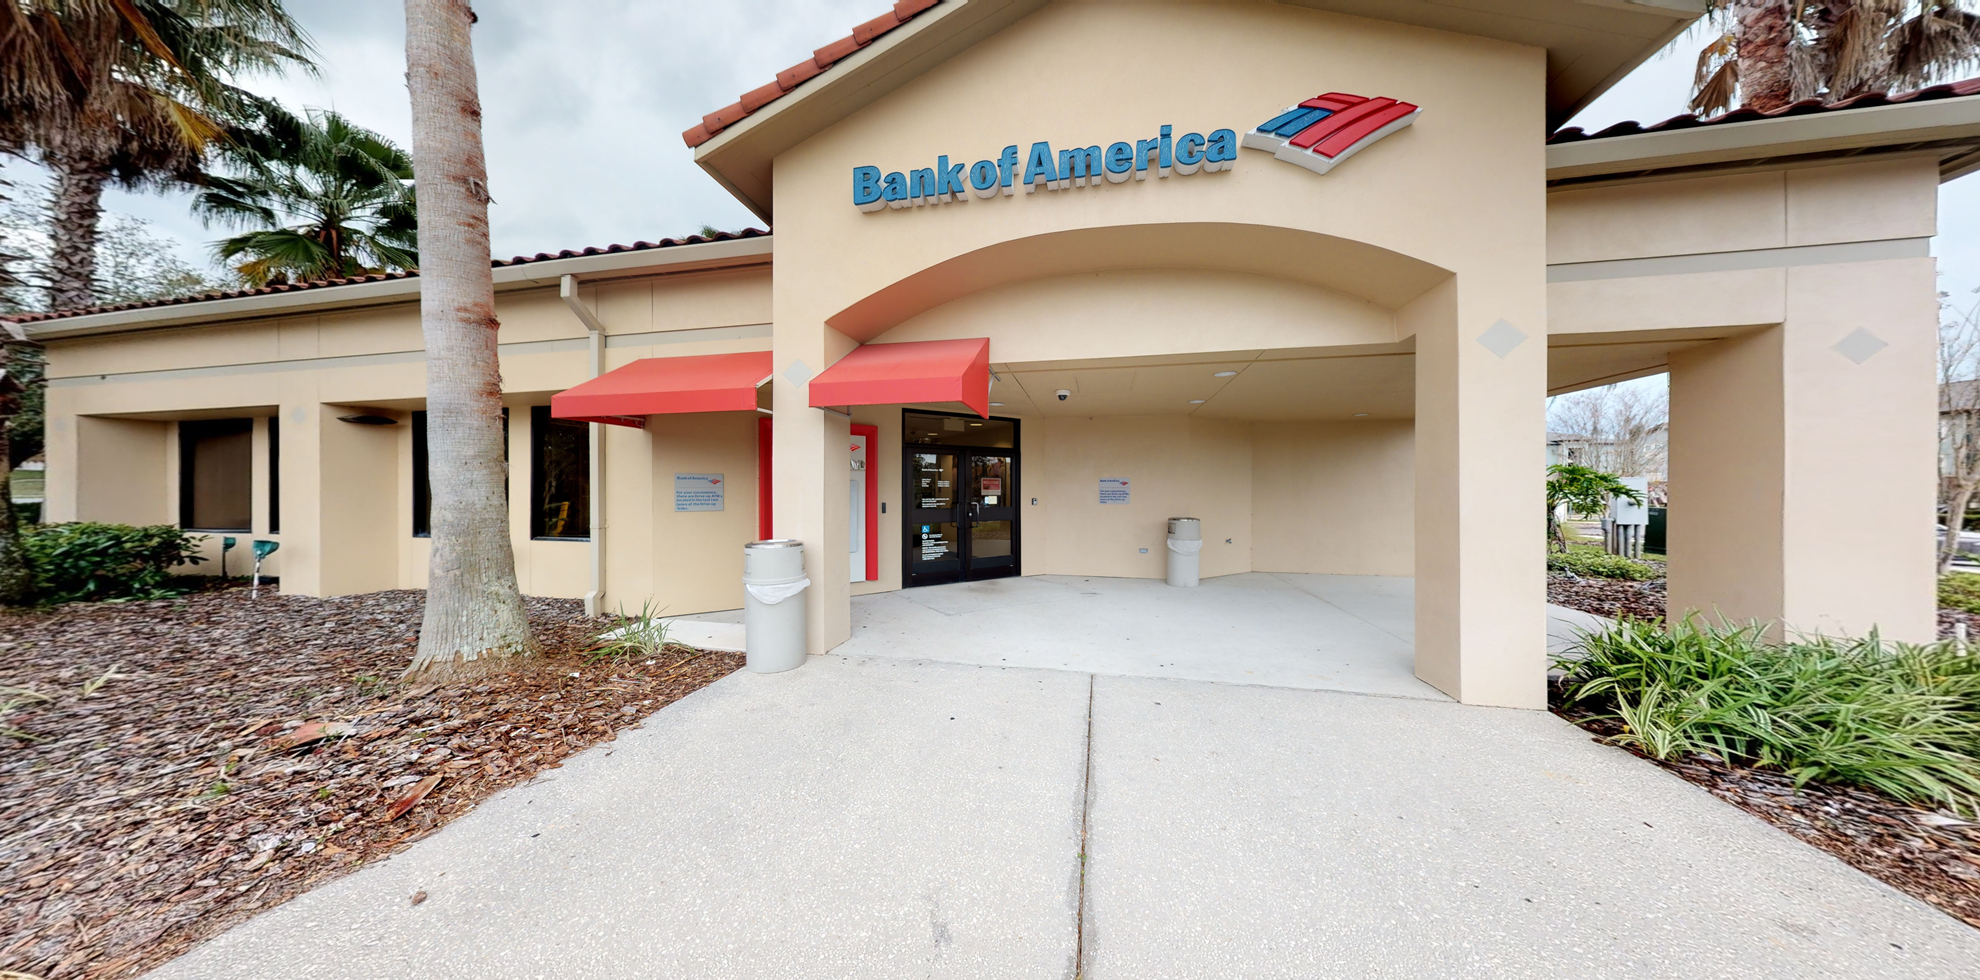 Bank of America financial center with drive-thru ATM | 5320 W State Road 46, Sanford, FL 32771